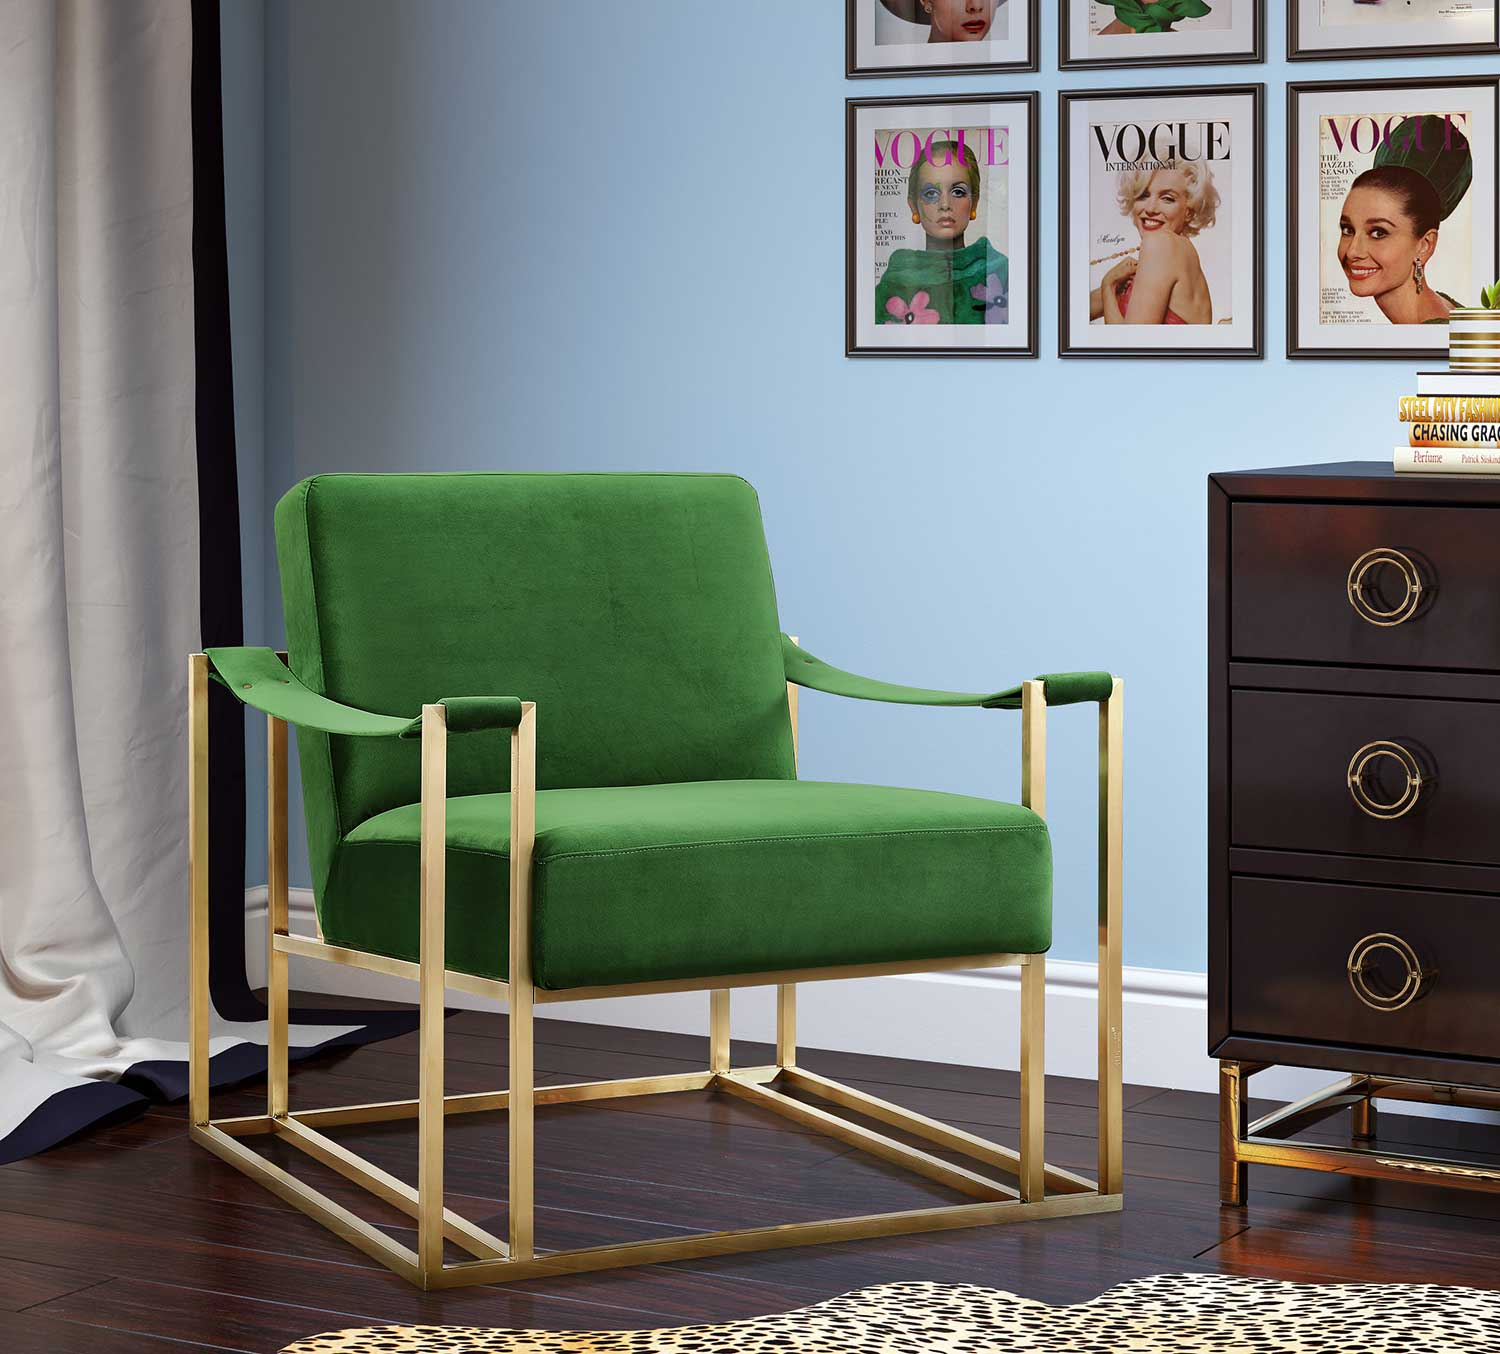 TOV Furniture Baxter Chair - Green